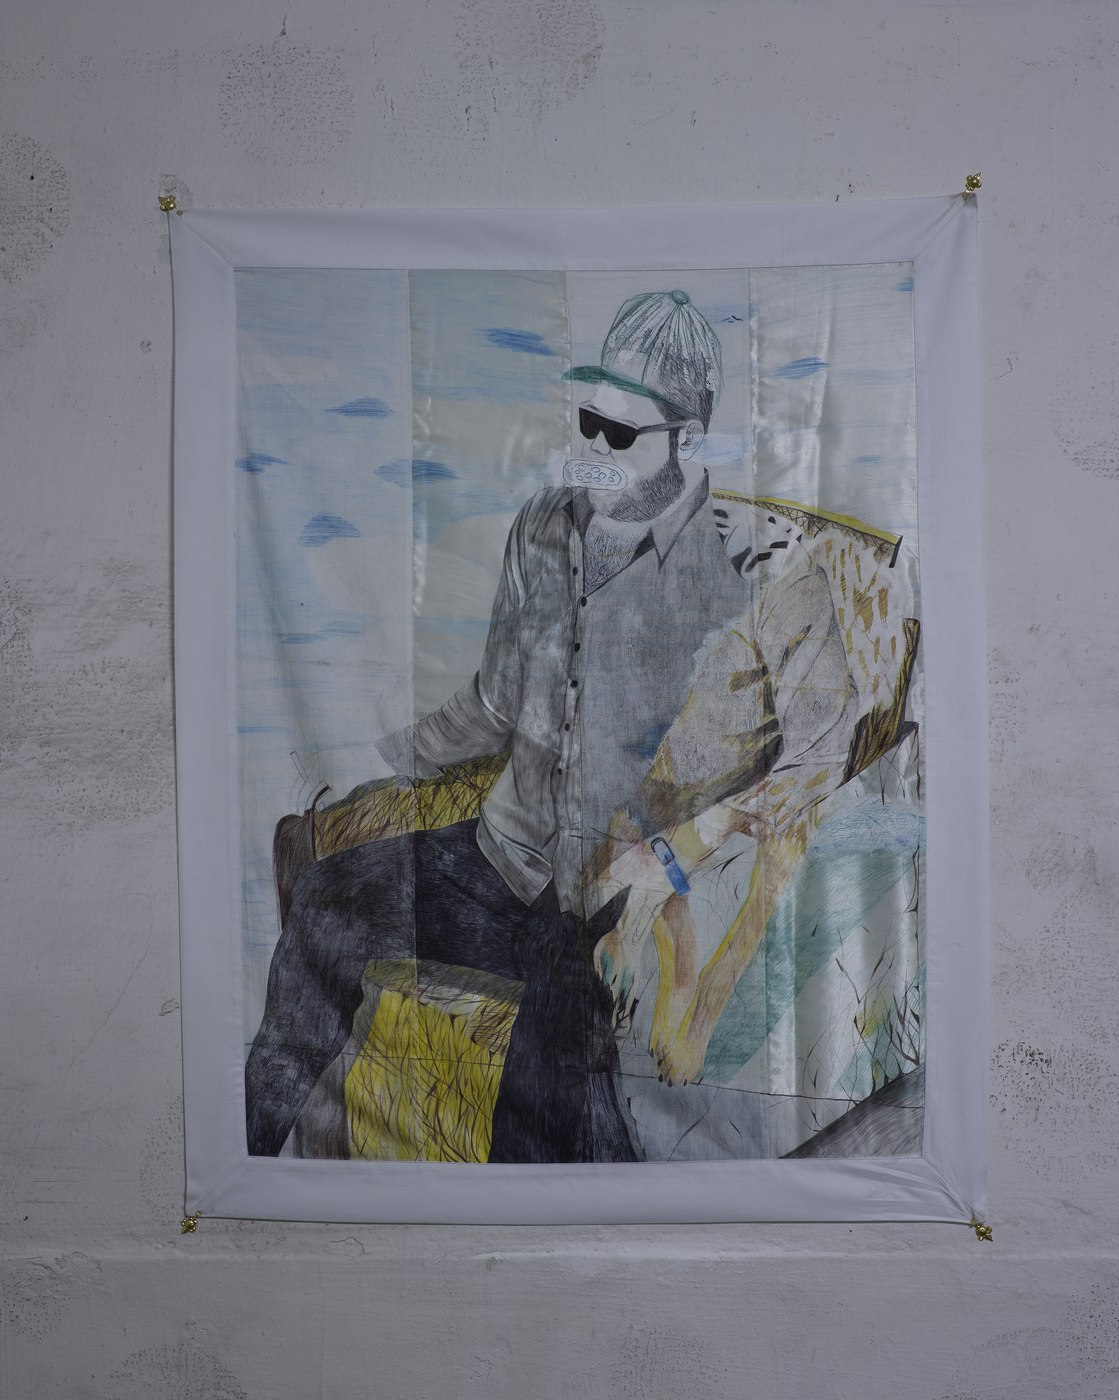 15_Marco Pio Mucci, Funny Stregone, 2016. Photo by Beppe Rasojpg